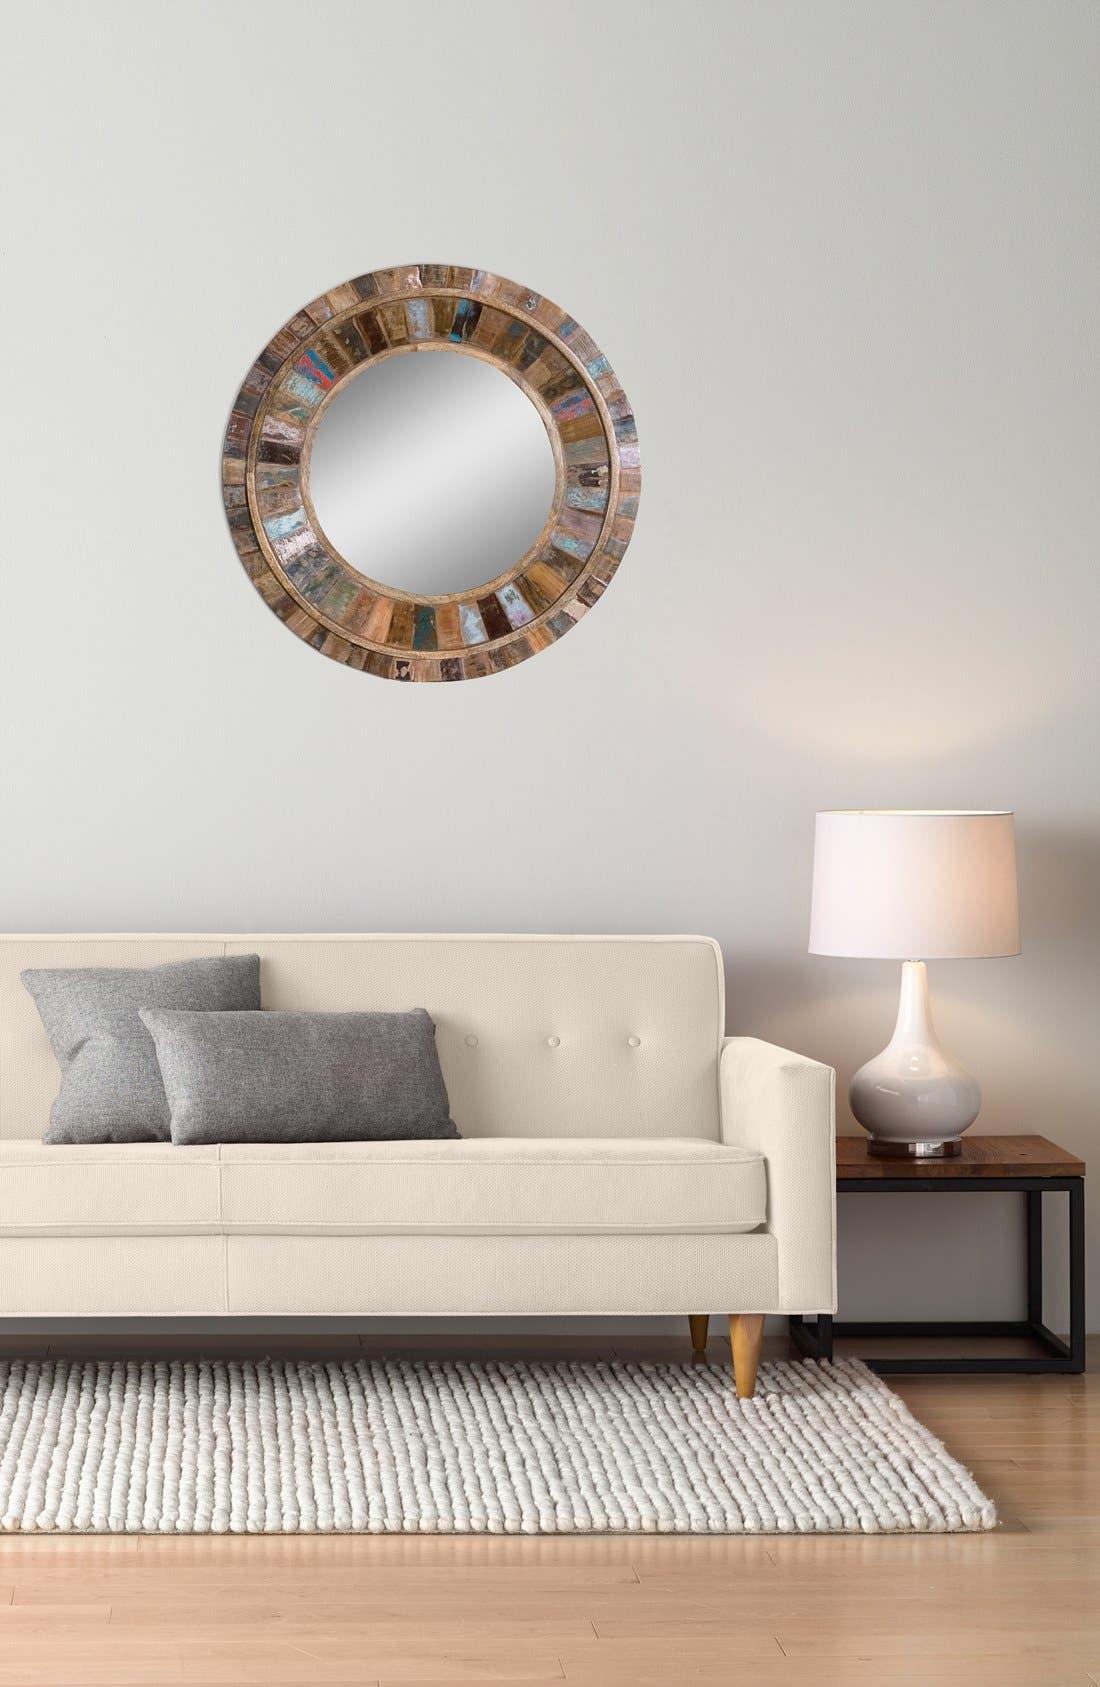 'Jeremiah' Round Wooden Wall Mirror,                             Alternate thumbnail 2, color,                             200